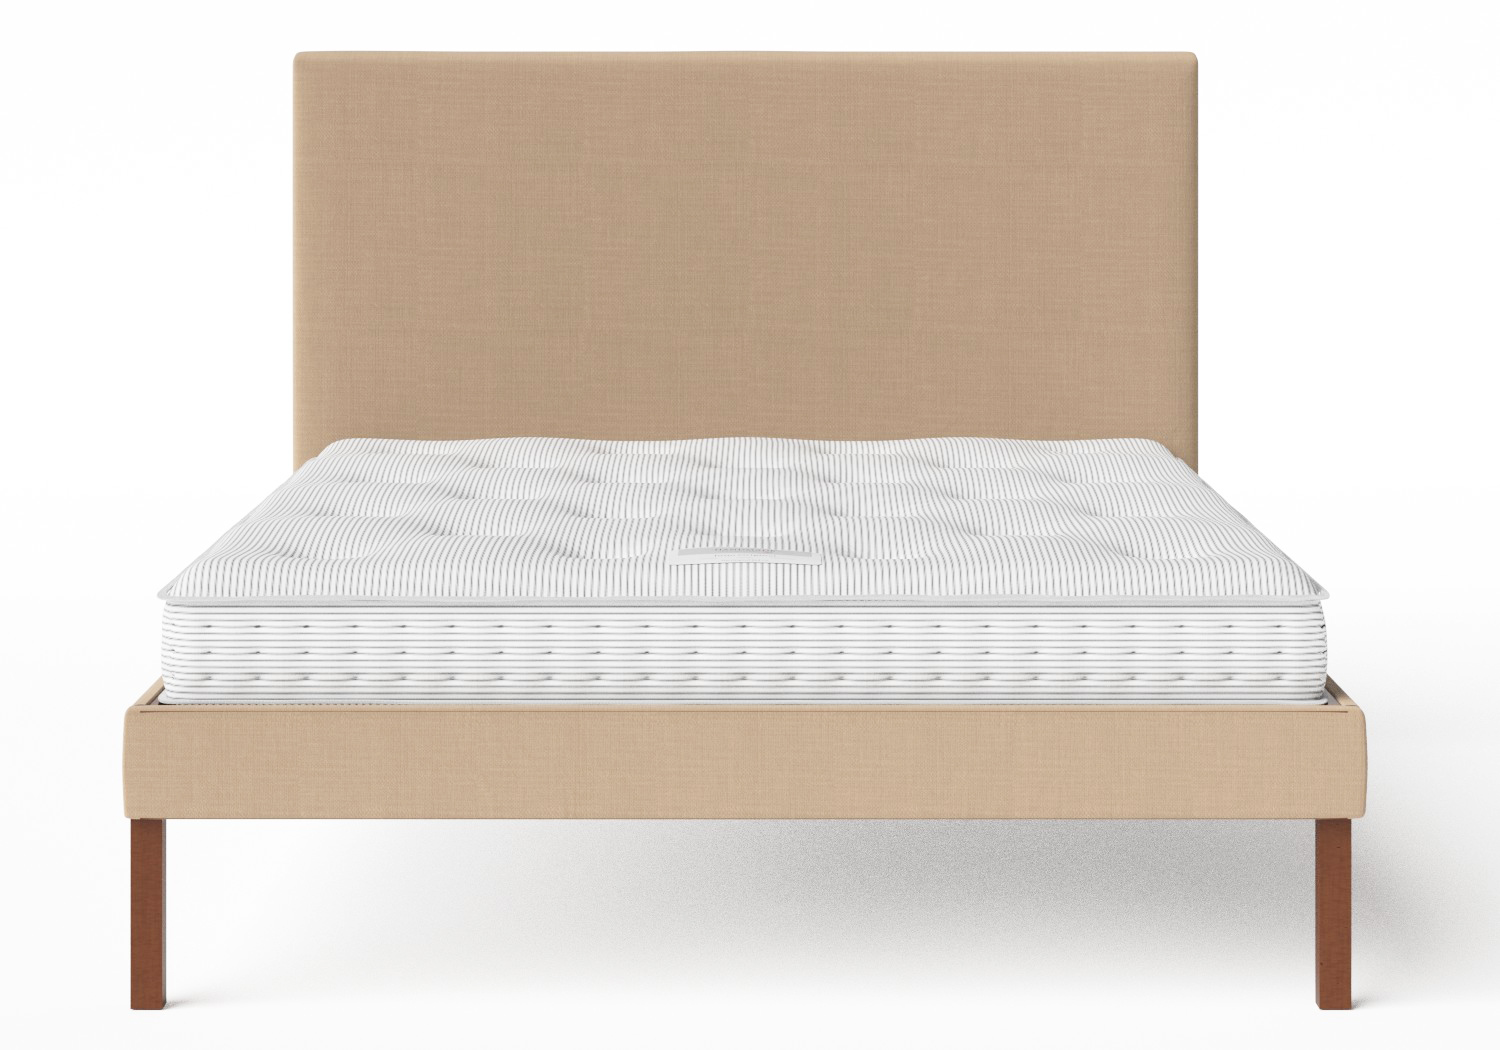 Misaki Upholstered Bed in Straw fabric shown with Juno 1 mattress